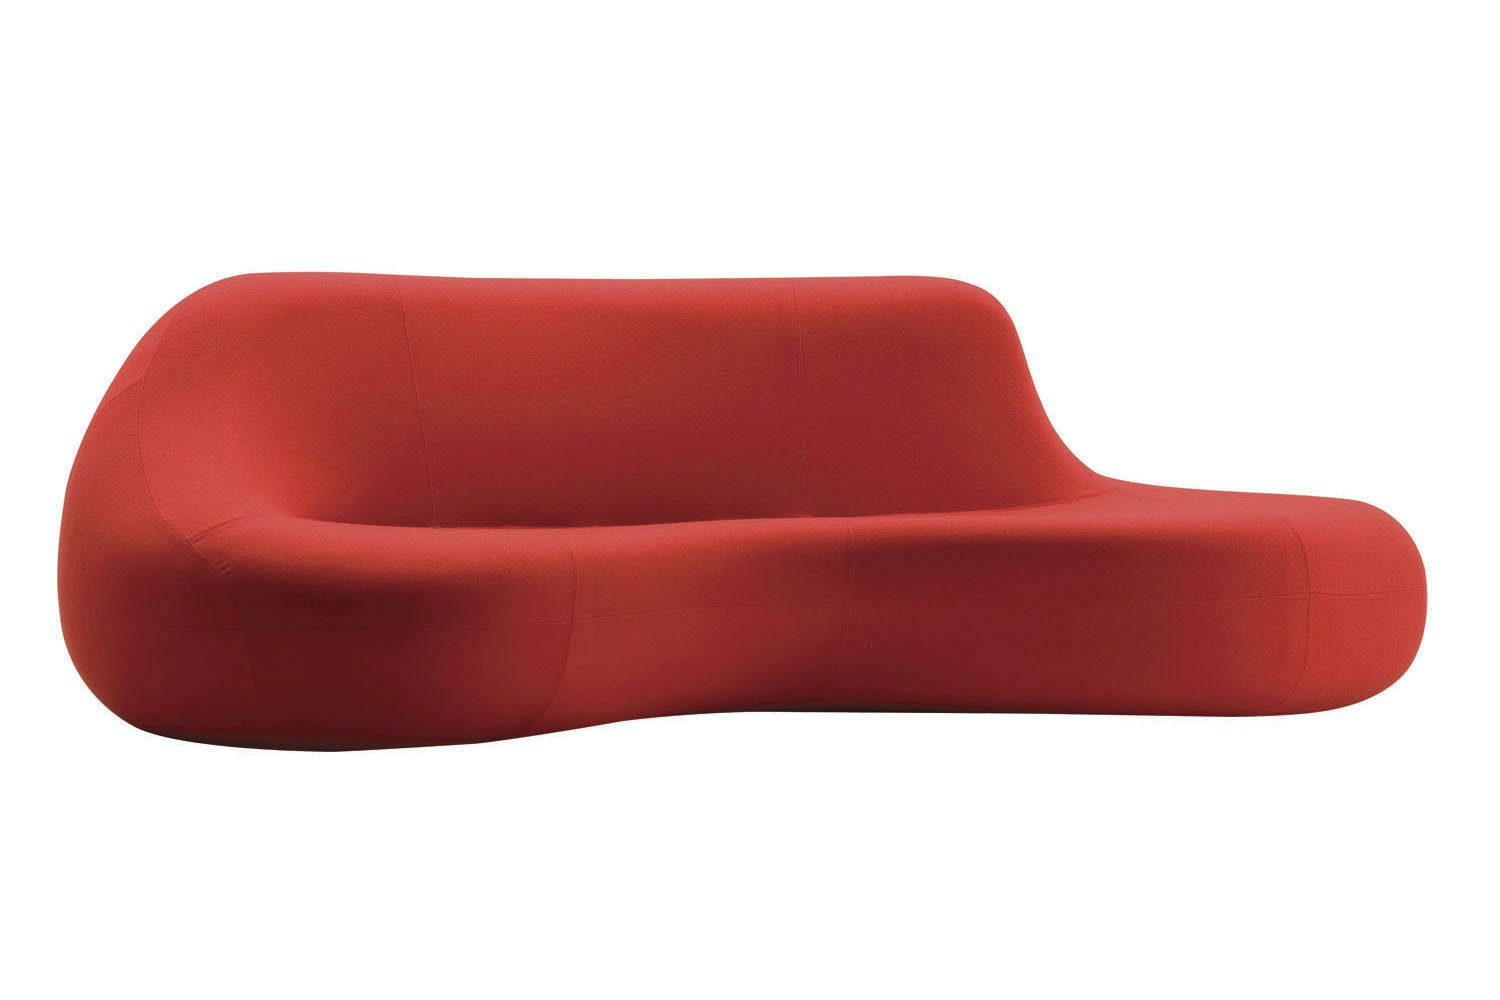 Koochy Sofa by Karim Rashid for Zanotta